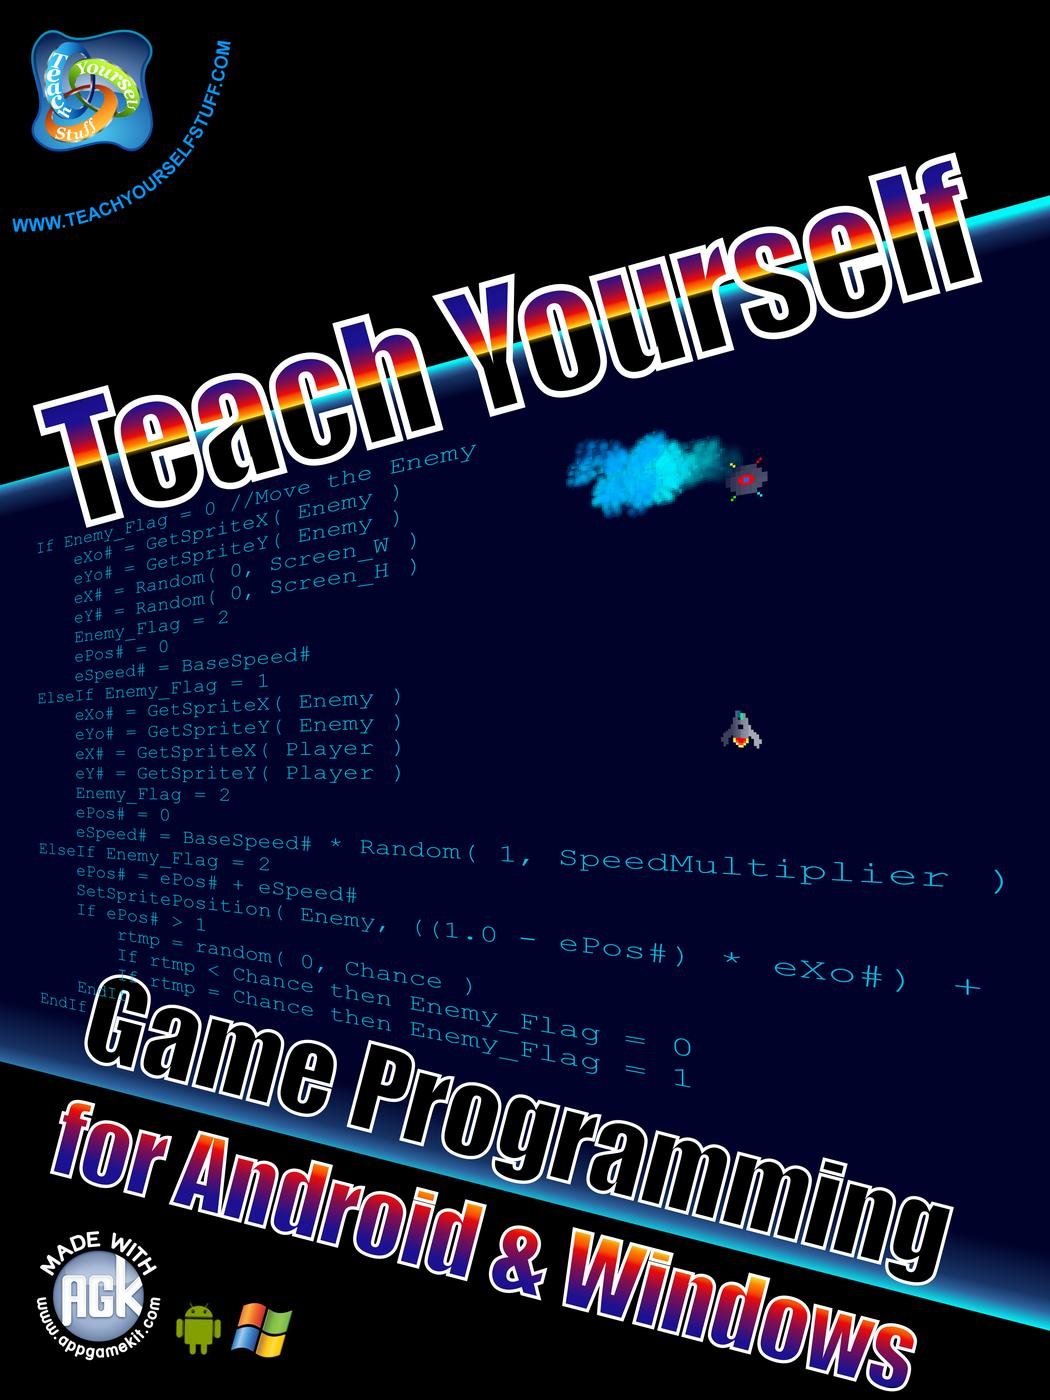 Teach Yourself Game Development for Android and Windows (Teach Yourself Game Programming for Android and Windows, #1)